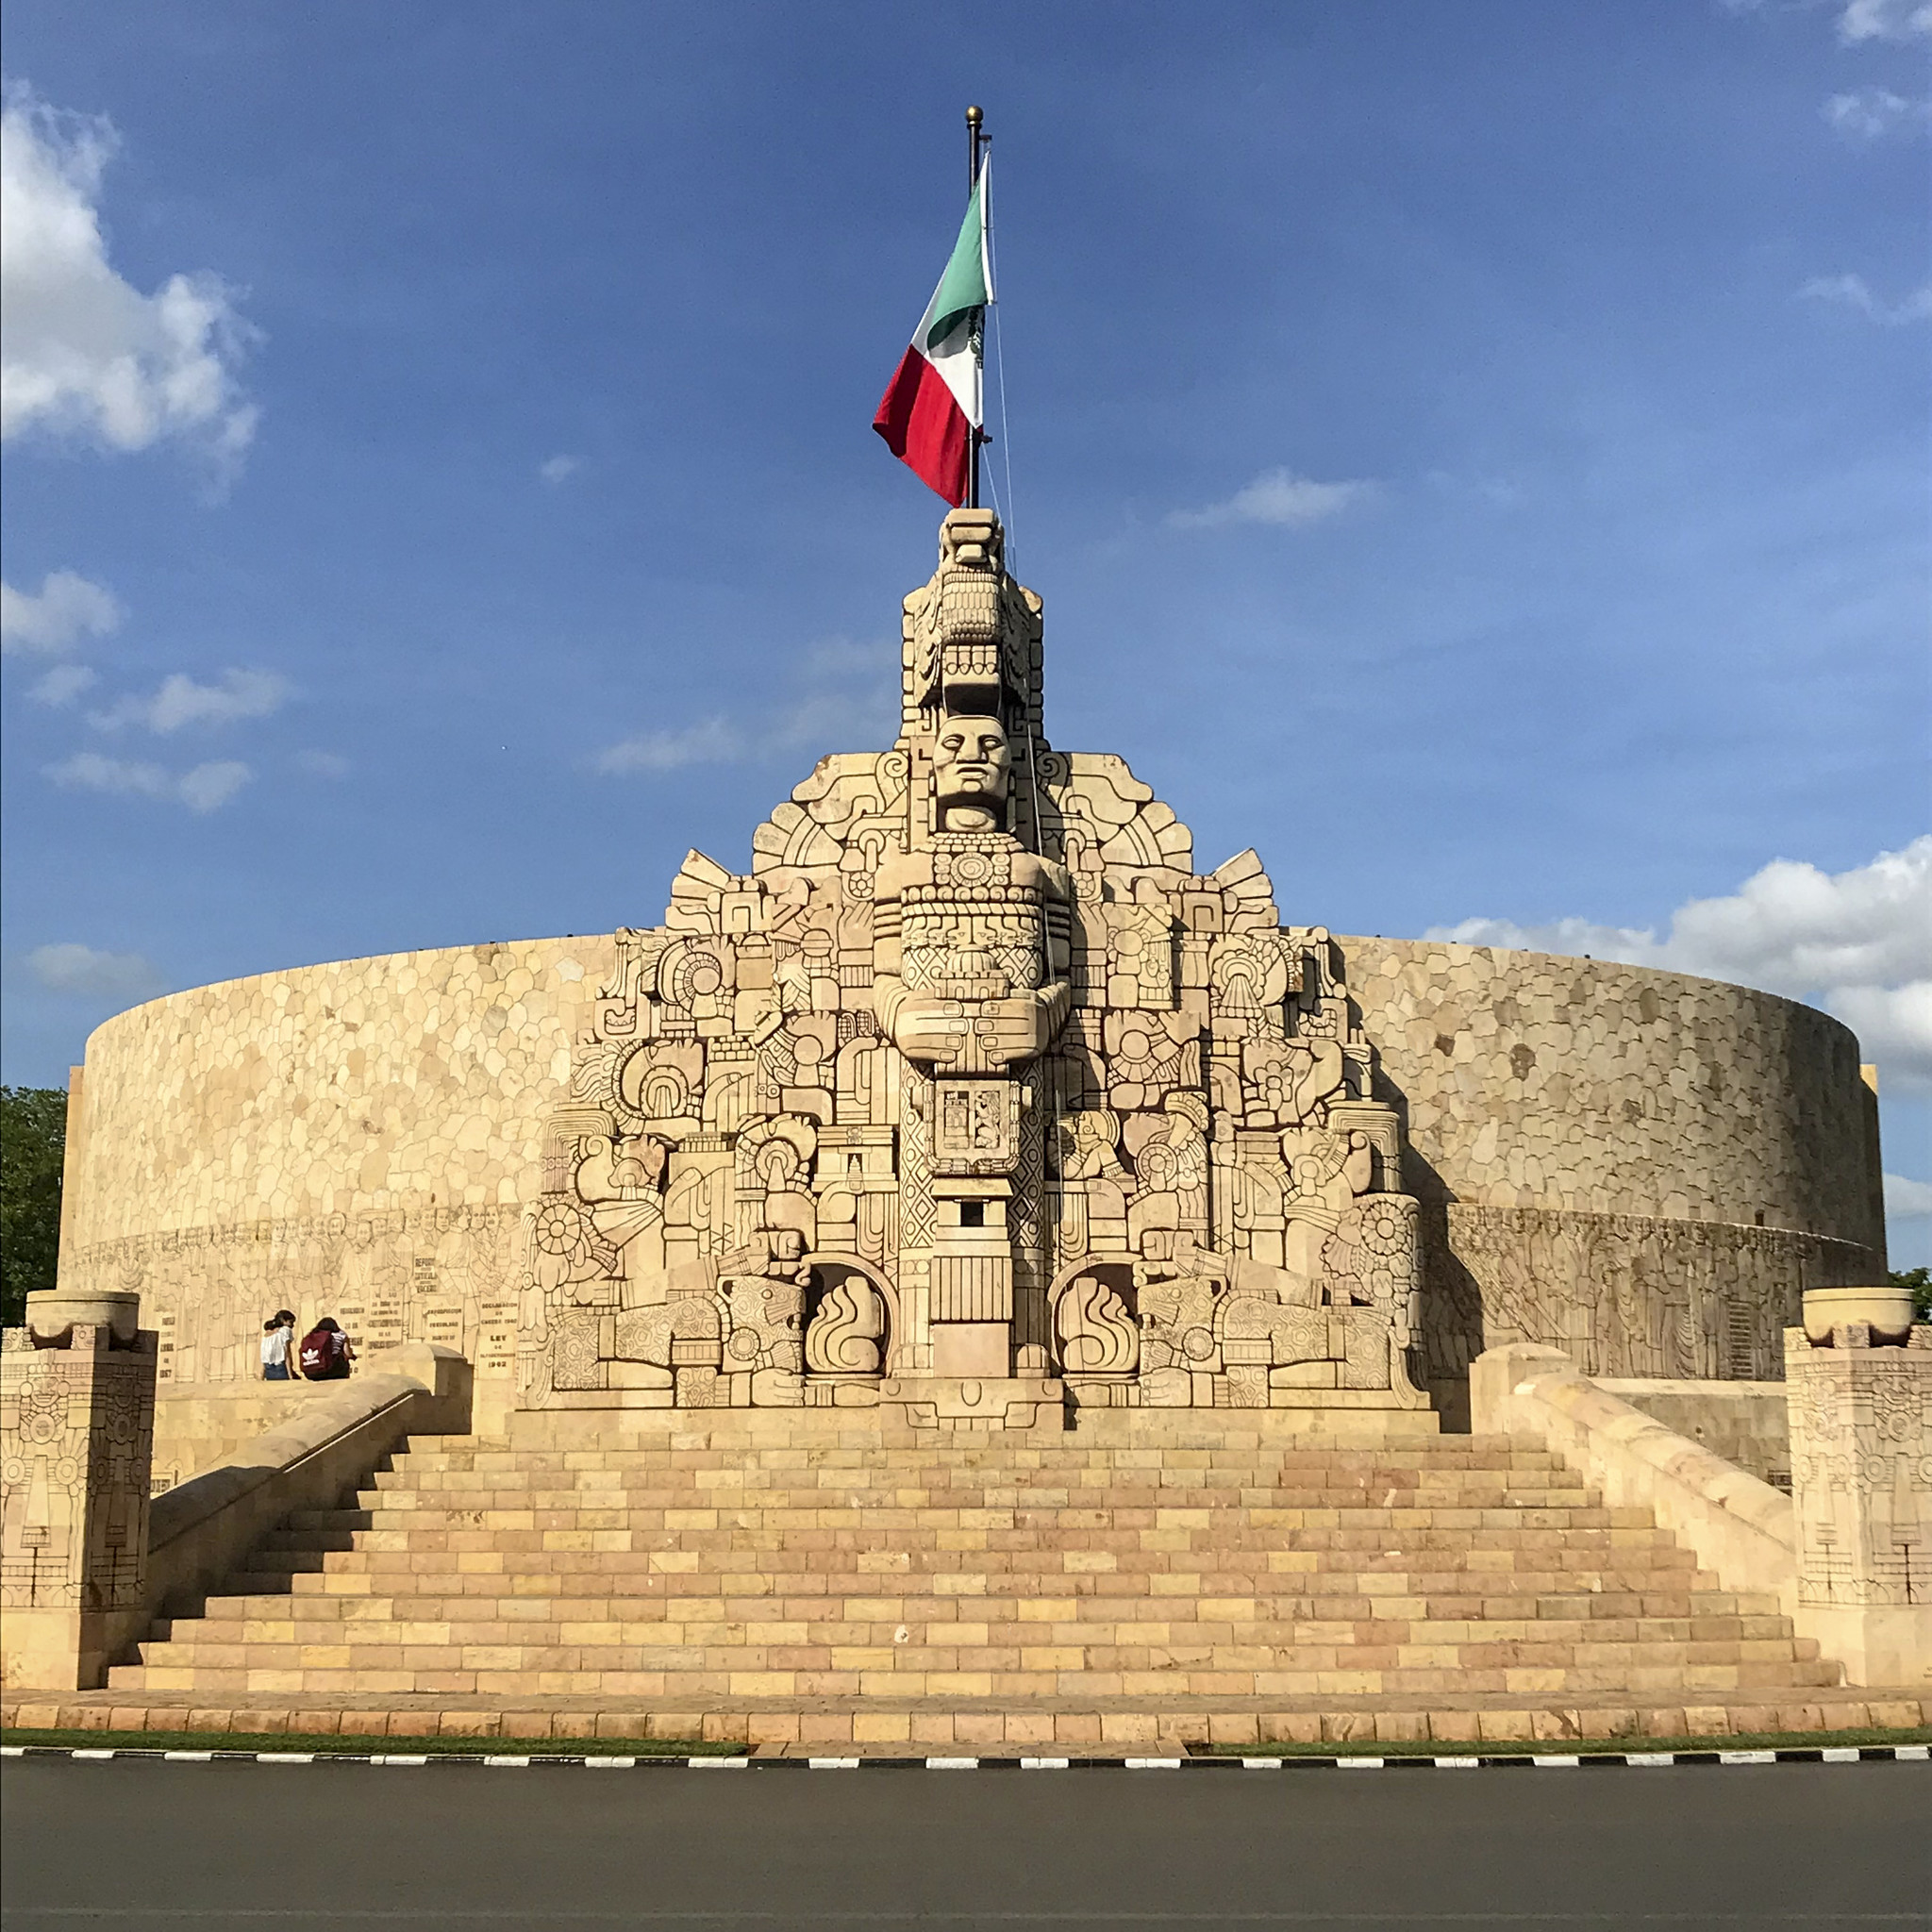 MERIDA, MEXICO - The grand Monument to the Fatherland on the broad Paseo de Montejo boulevard in Mer